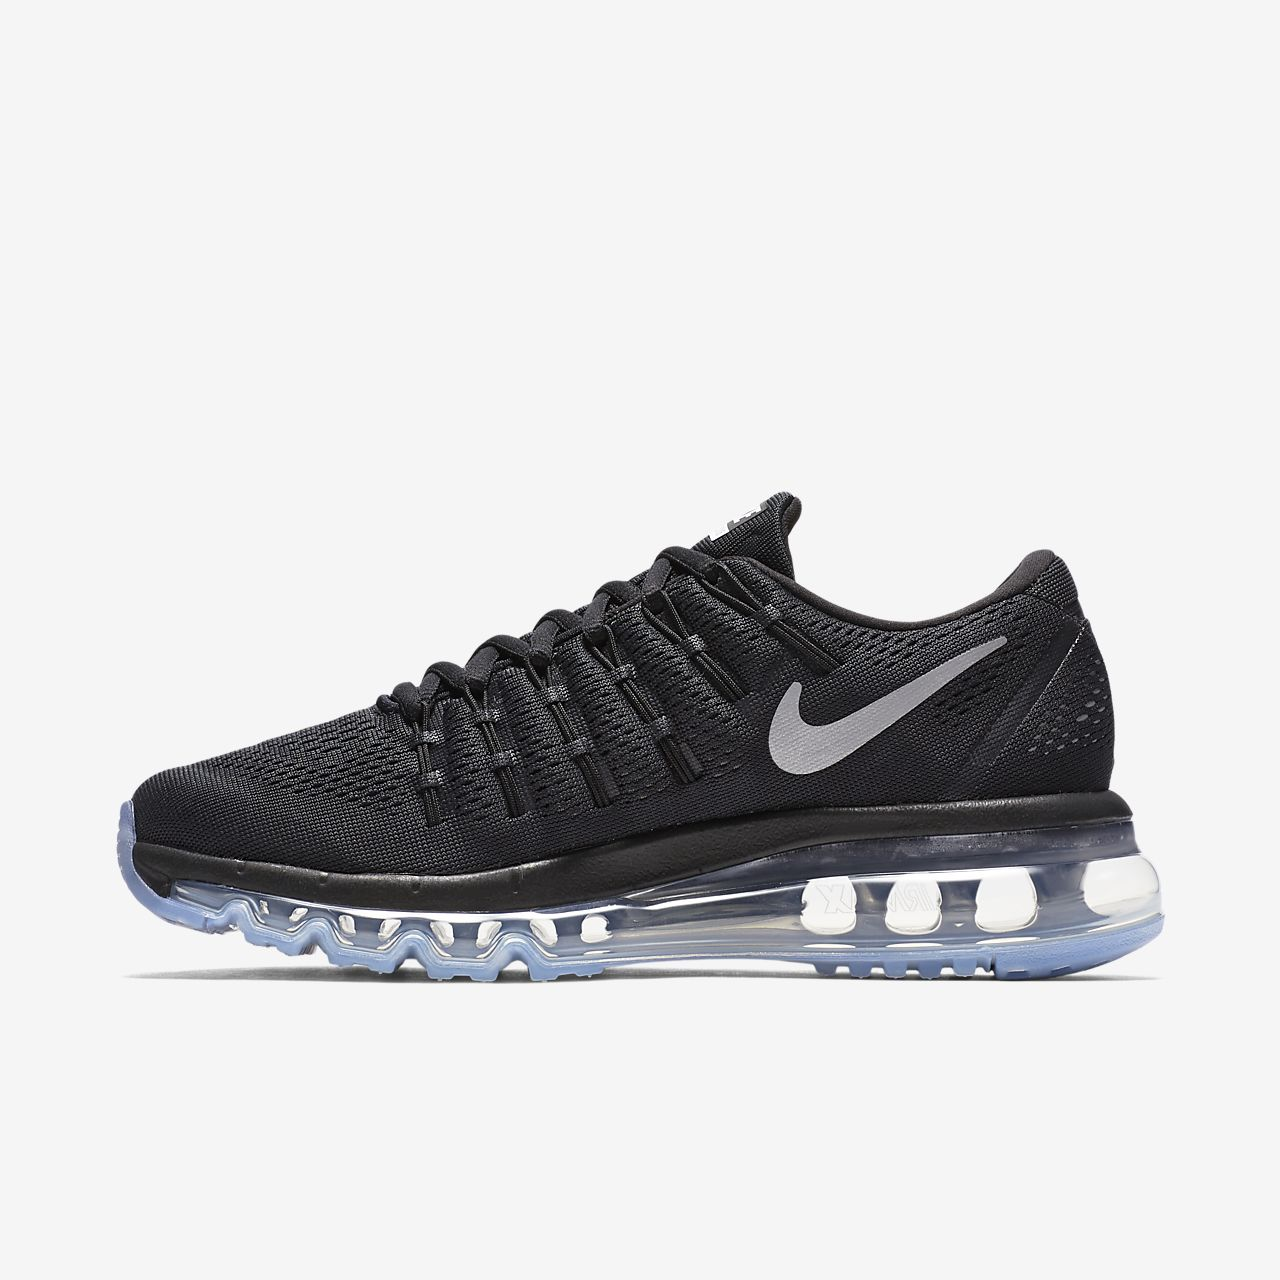 ... Nike Air Max 2016 Women's Running Shoe